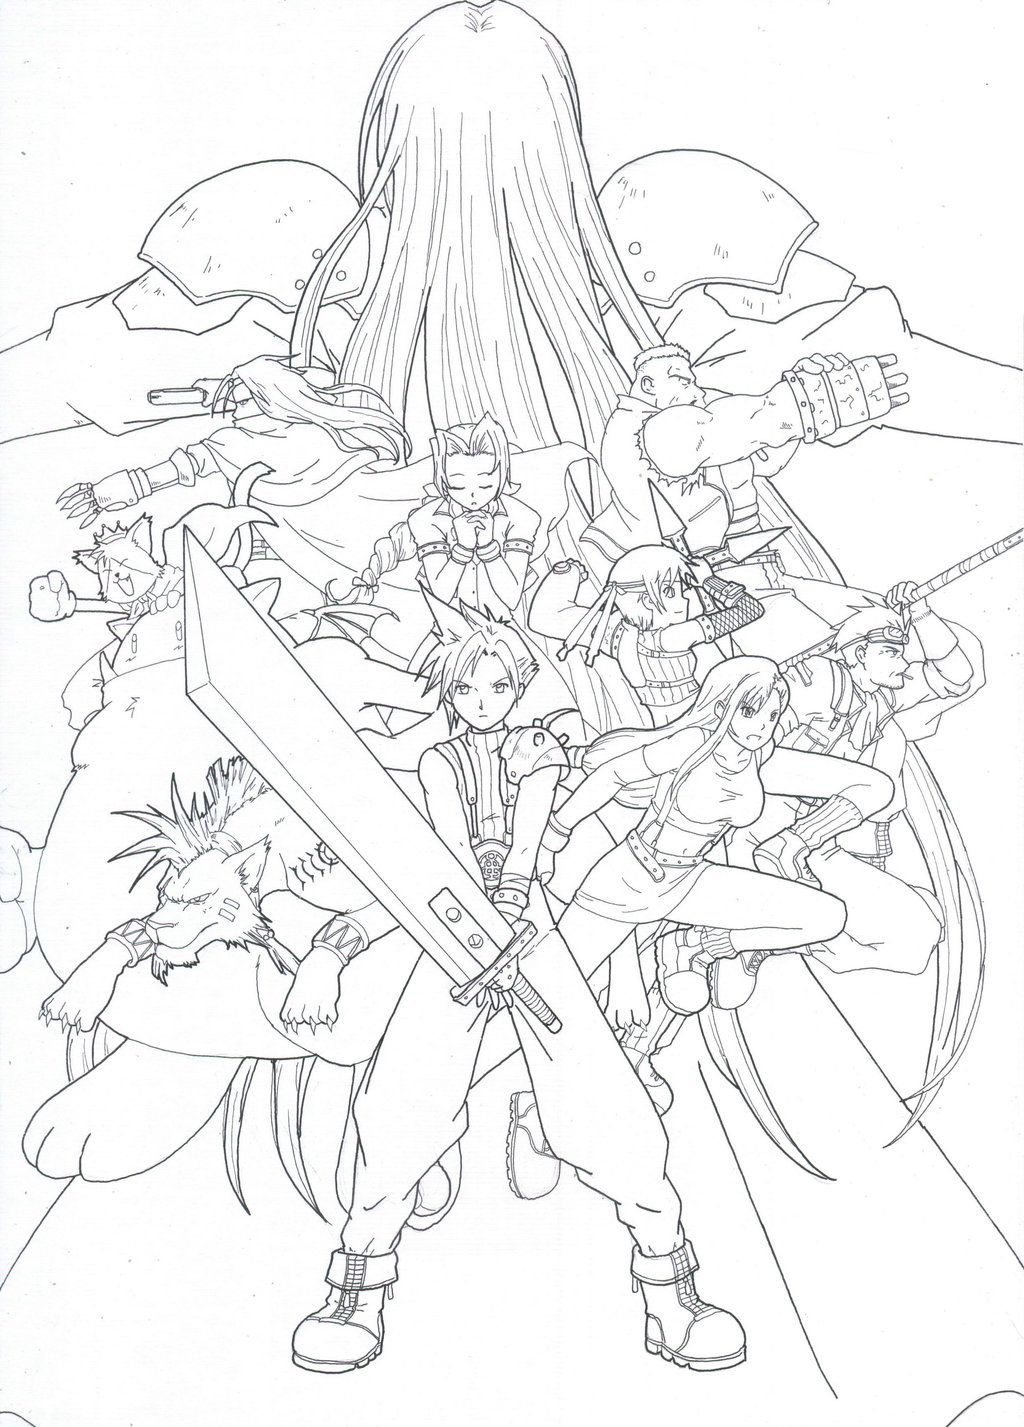 Final Fantasy 7 Fan Art Coloring Pages and Printables Download Of Final Fantasy Moogle Coloring Pages Keywords and Pictures Download